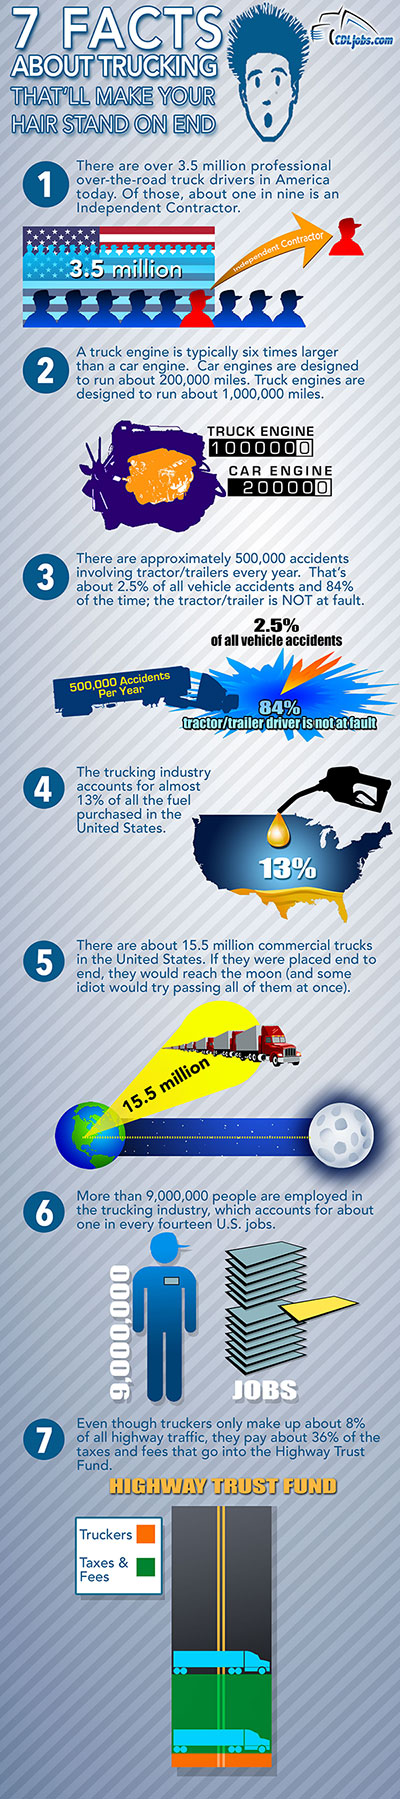 7 Facts Trucking Infographic   CDLjobs.com